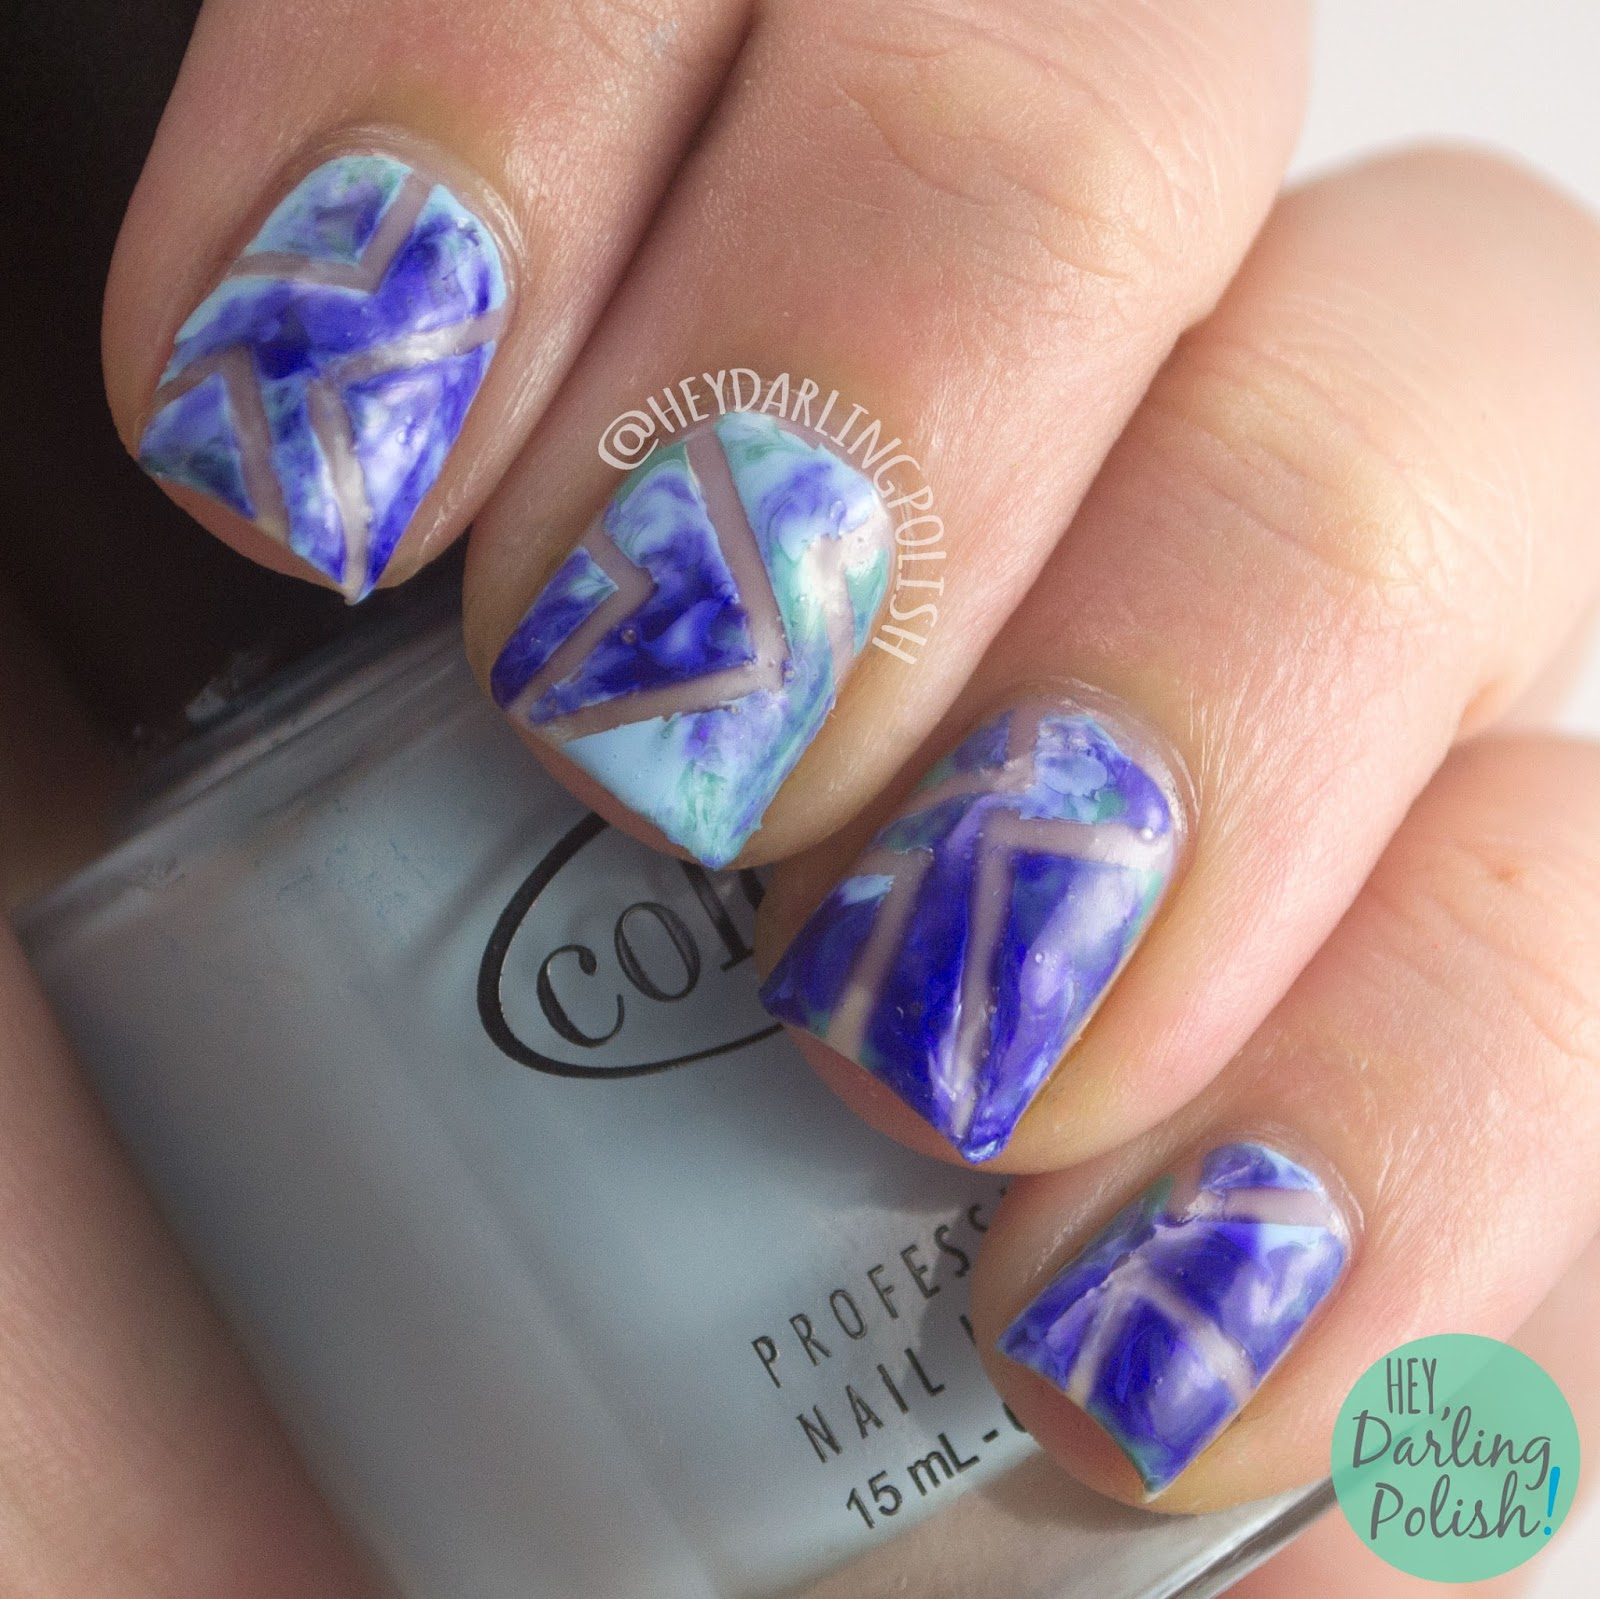 nails, nail art, nail polish, negative space, dry marble, hey darling polish, tape, fingerfood theme buffet, theme buffet